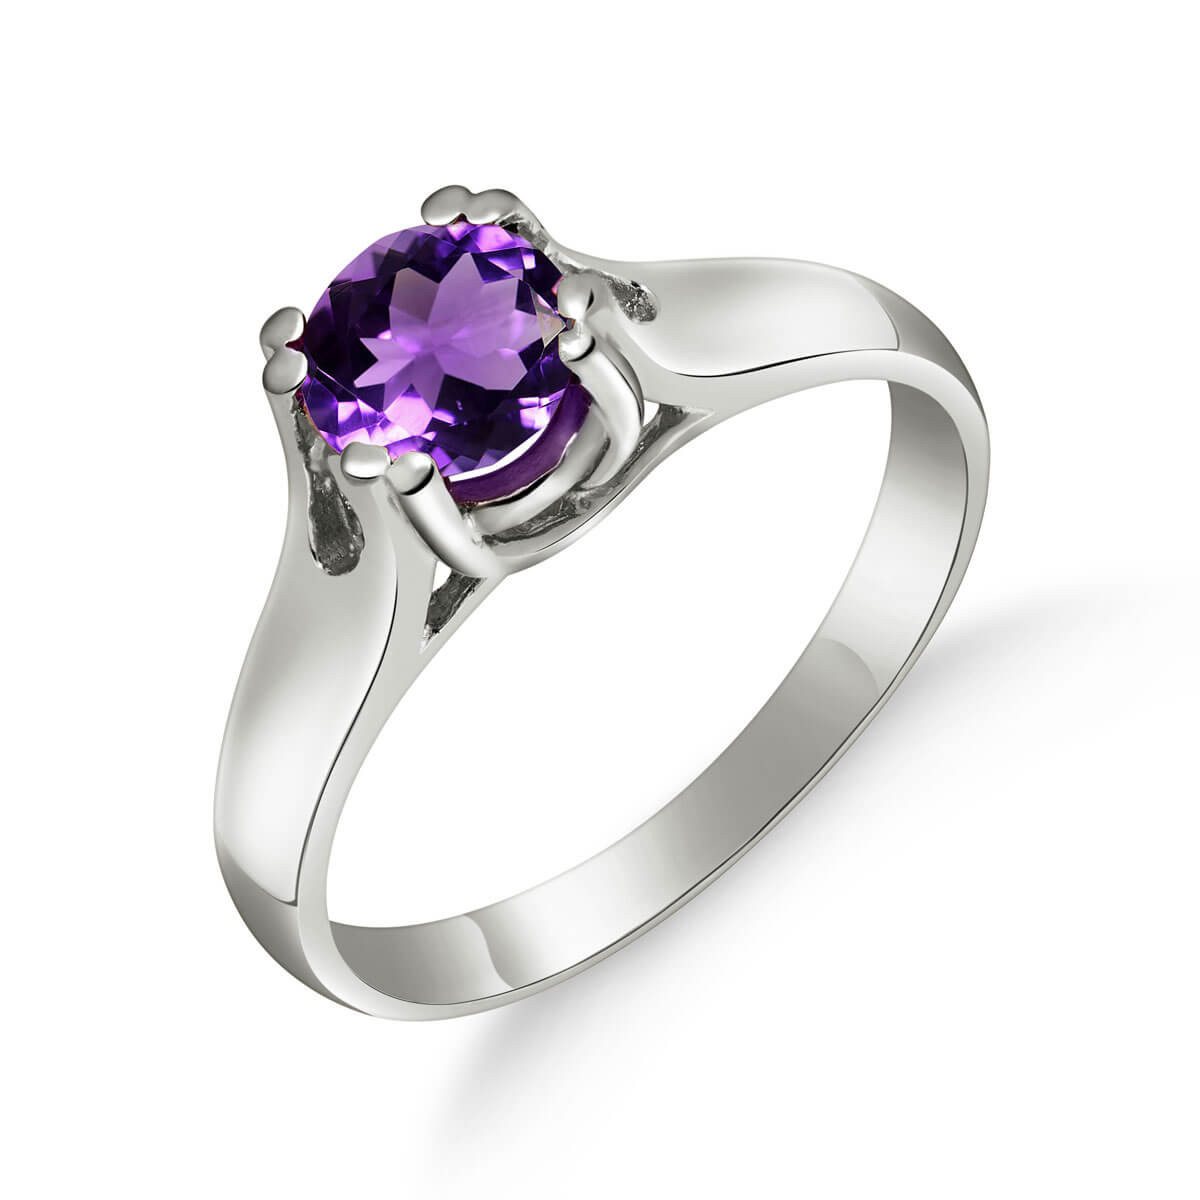 Amethyst Solitaire Ring 1.1 ct in Sterling Silver